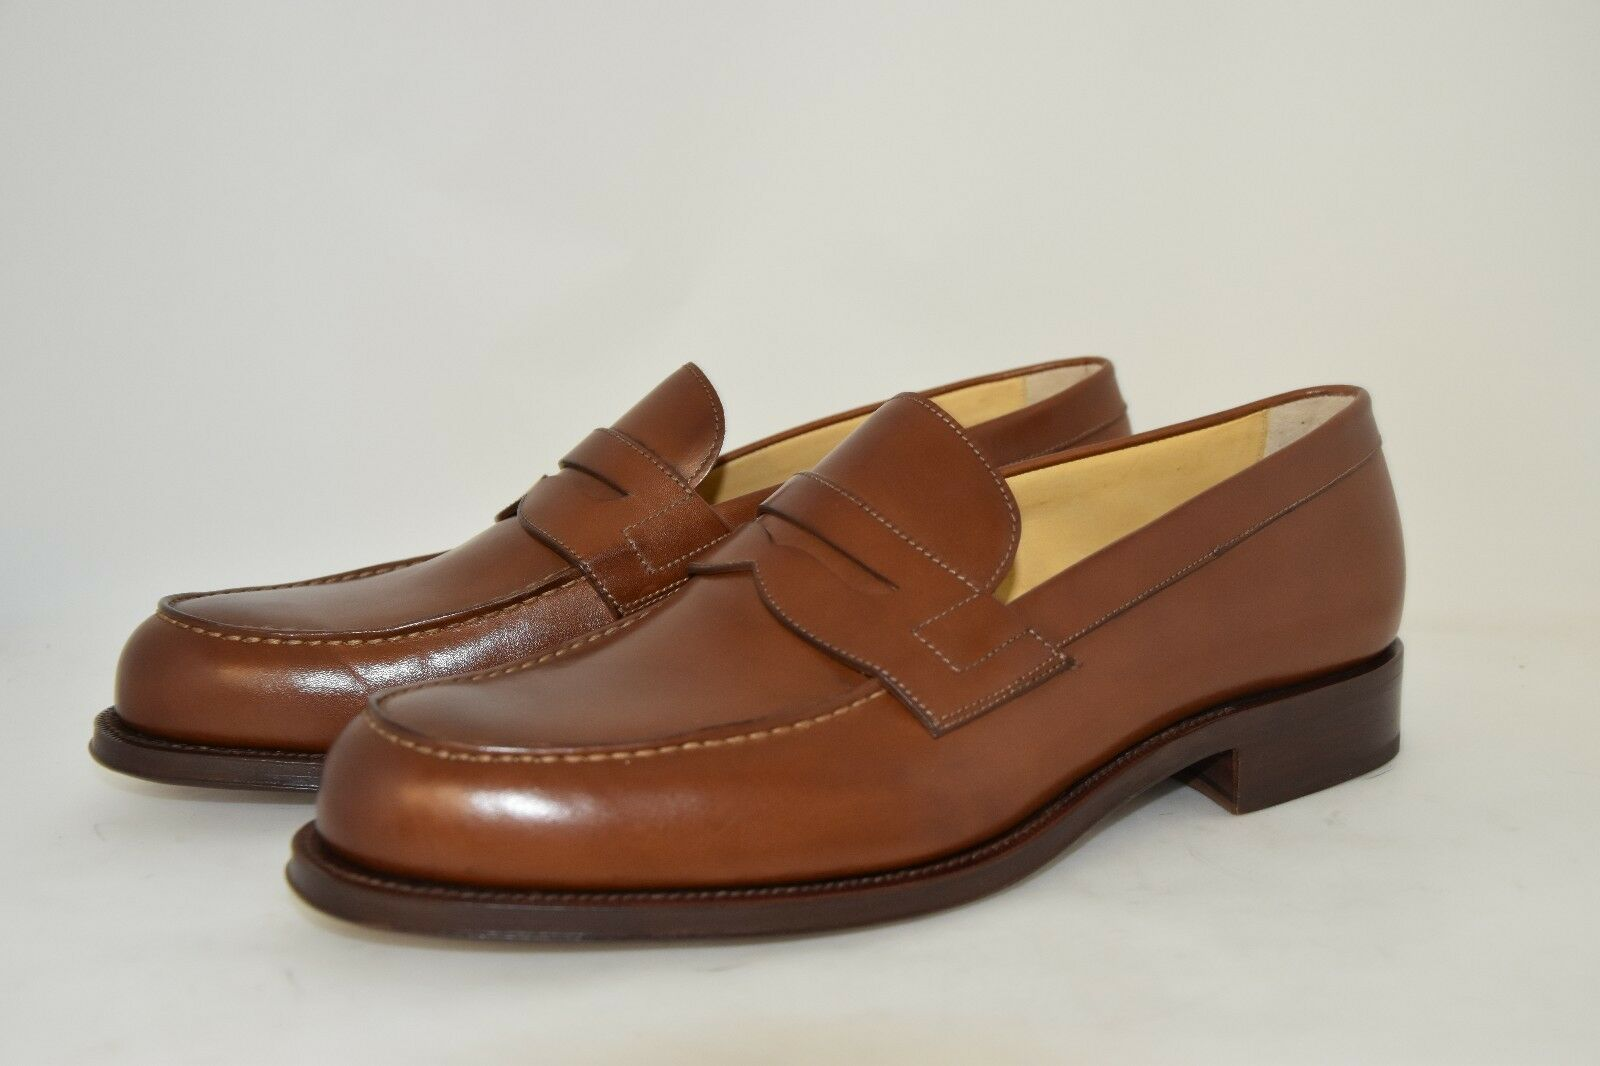 MAN-11eu-12us-PENNY LOAFER-MOCASSINO-COGNAC CALF-LEATHER SOLE-SUOLA CUOIO